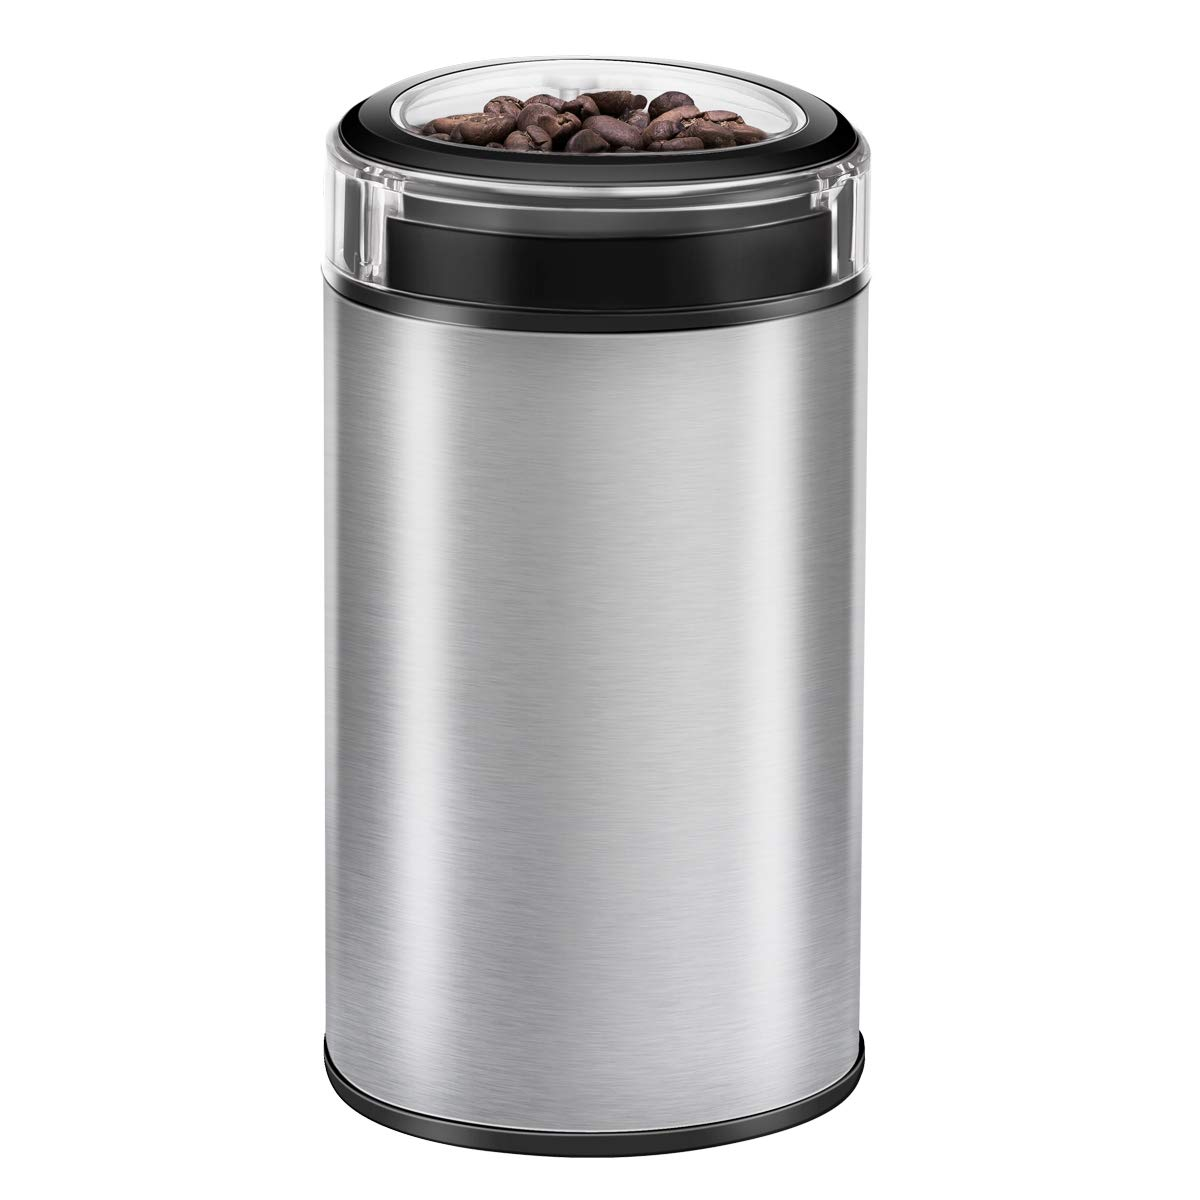 Coffee Grinder Electric, CUSIBOX Multifunctional Stainless Steel Blade Coffee Grinder Fast Grinding Coffee Beans, Nuts, Grains, Spices (Sliver) (Sliver)